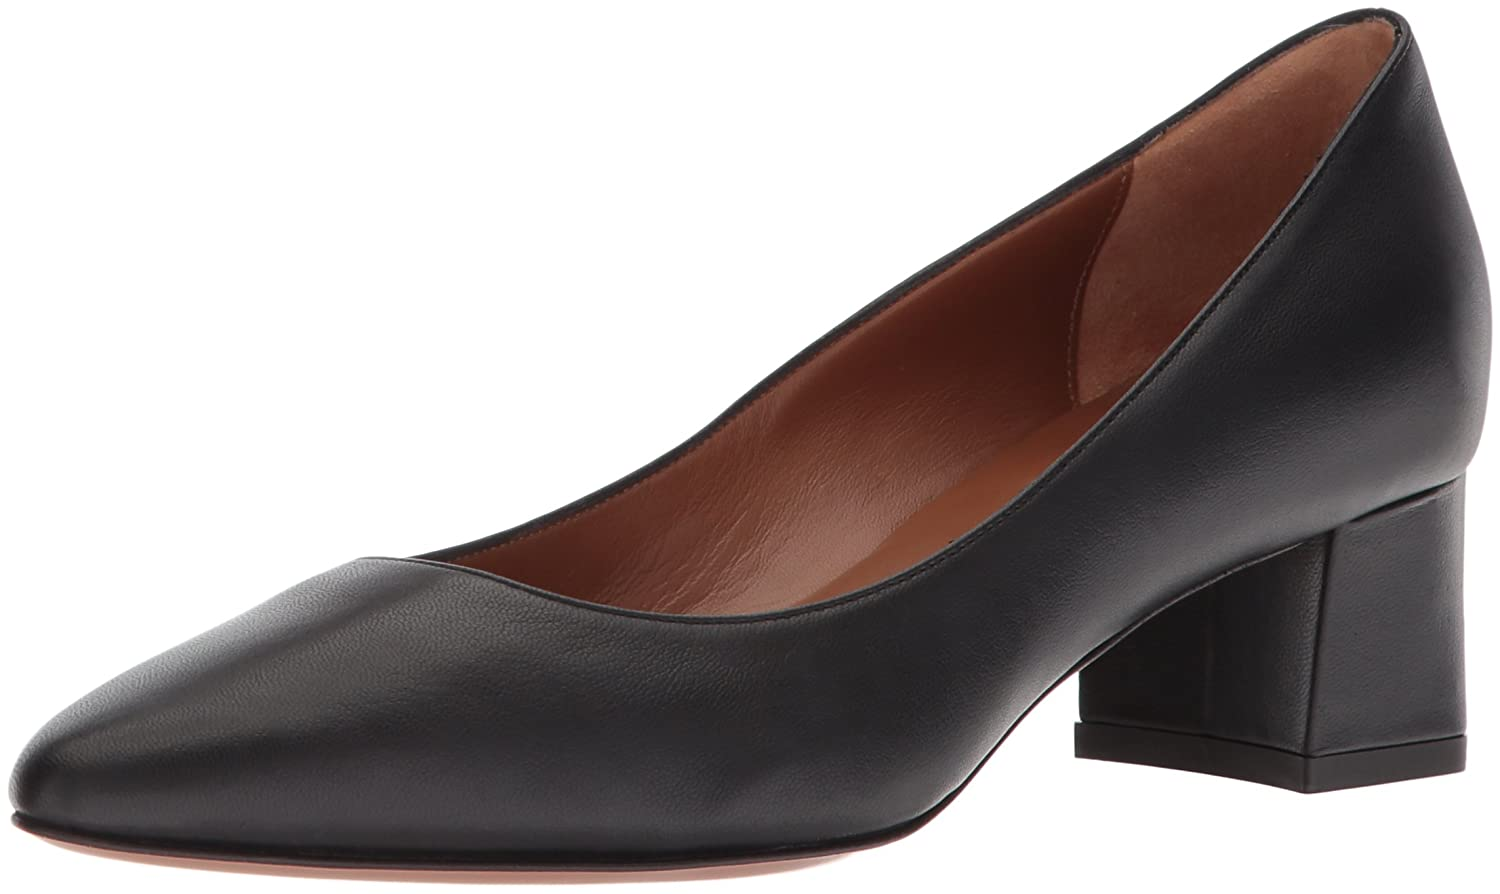 Aquatalia by Marvin K. Women's Pheobe Nappa Pump B078WXNWD6 7.5 B(M) US|Black